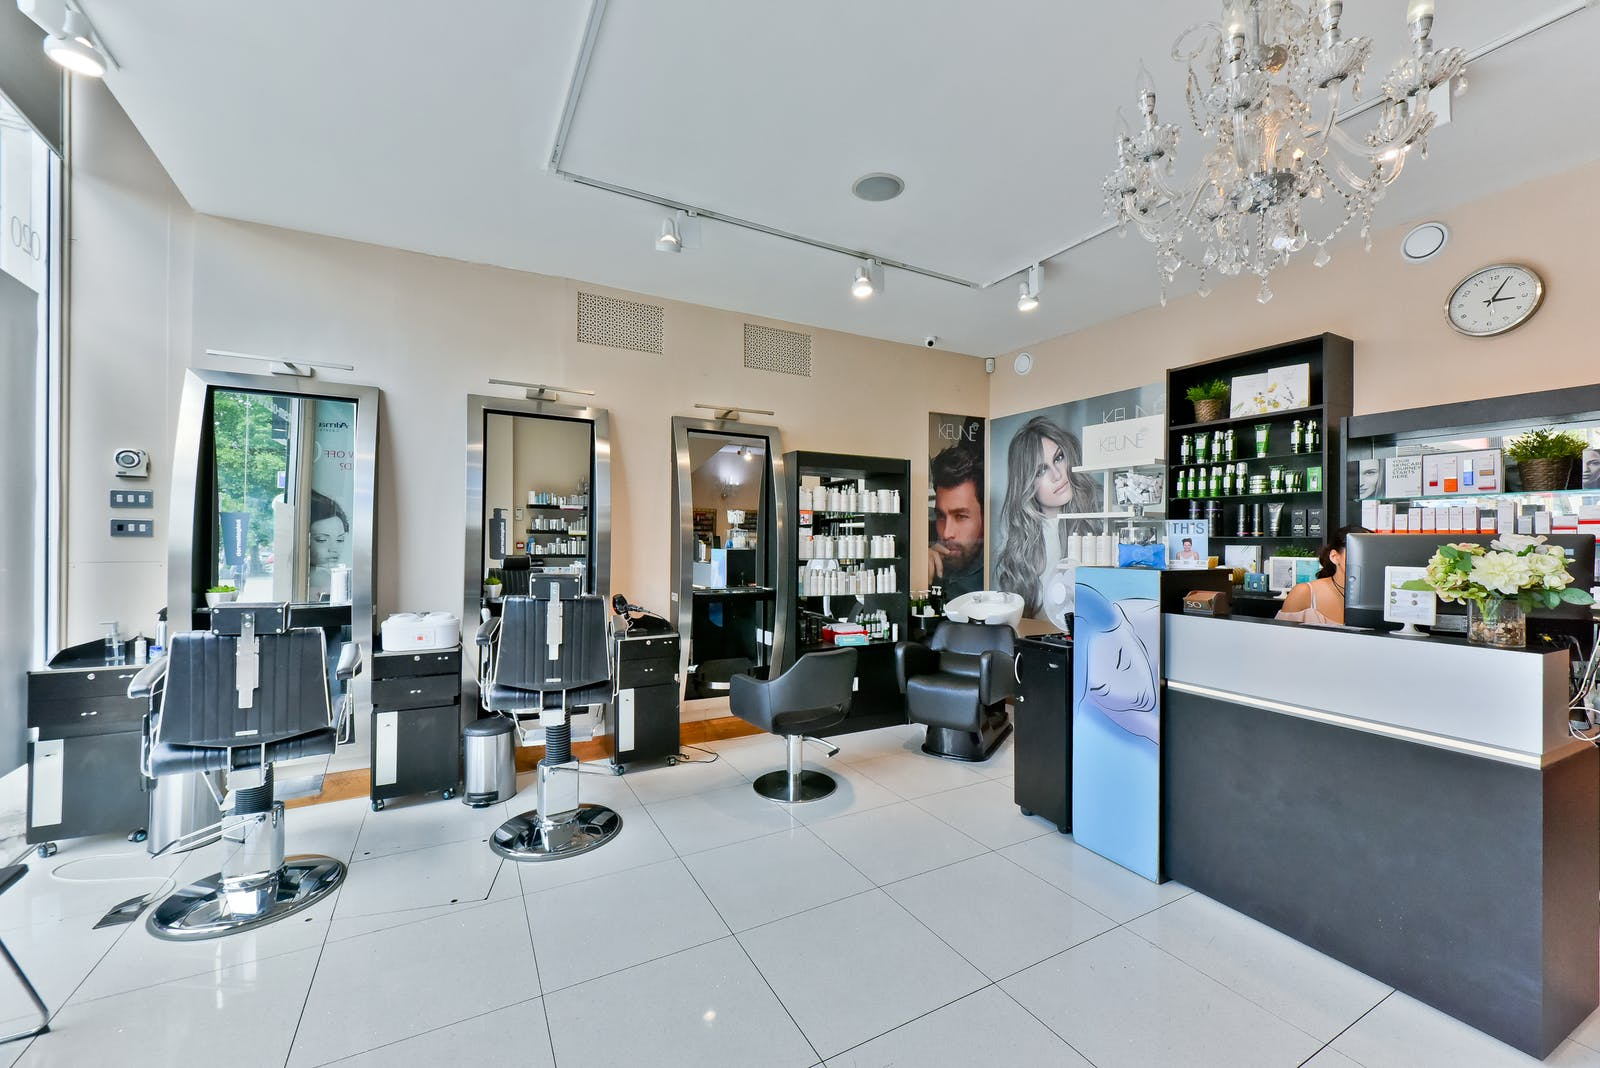 21 Clapham High Street, London, Mixed Use For Sale - 21 Clapham High Street, SW4 7TR picture No. 12